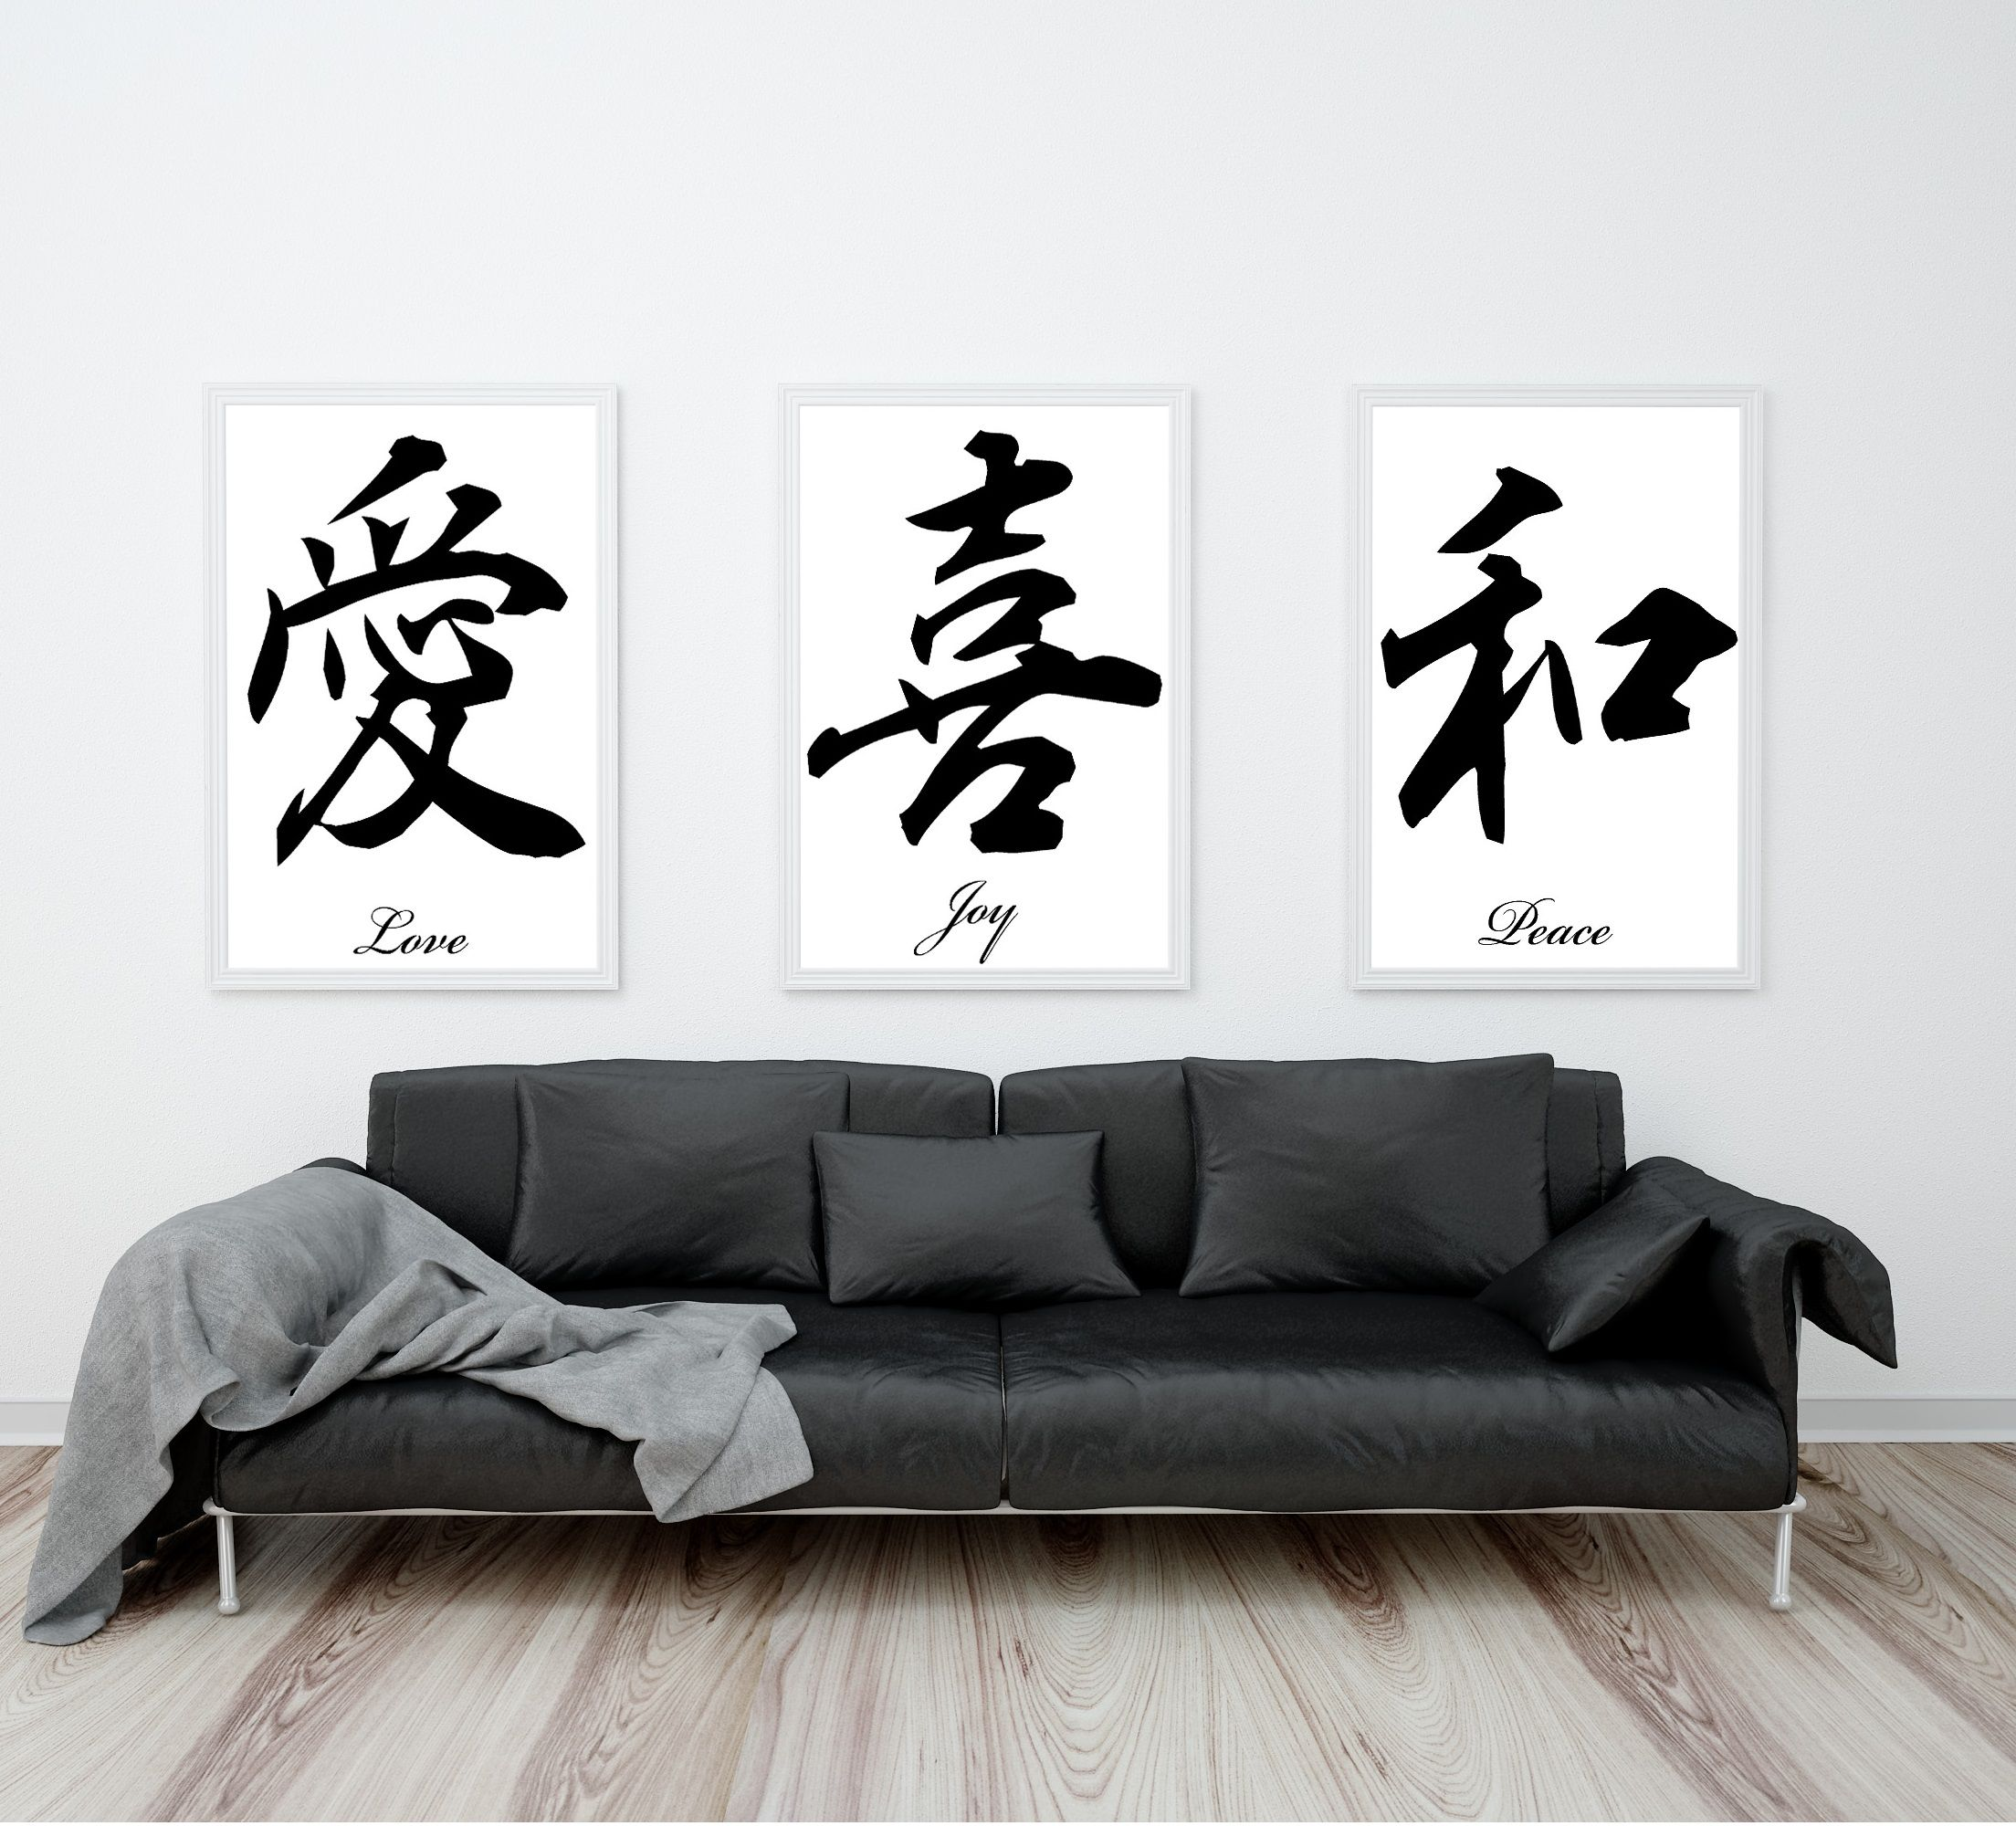 Love joy peace japanese wall art living room for Asian office decor